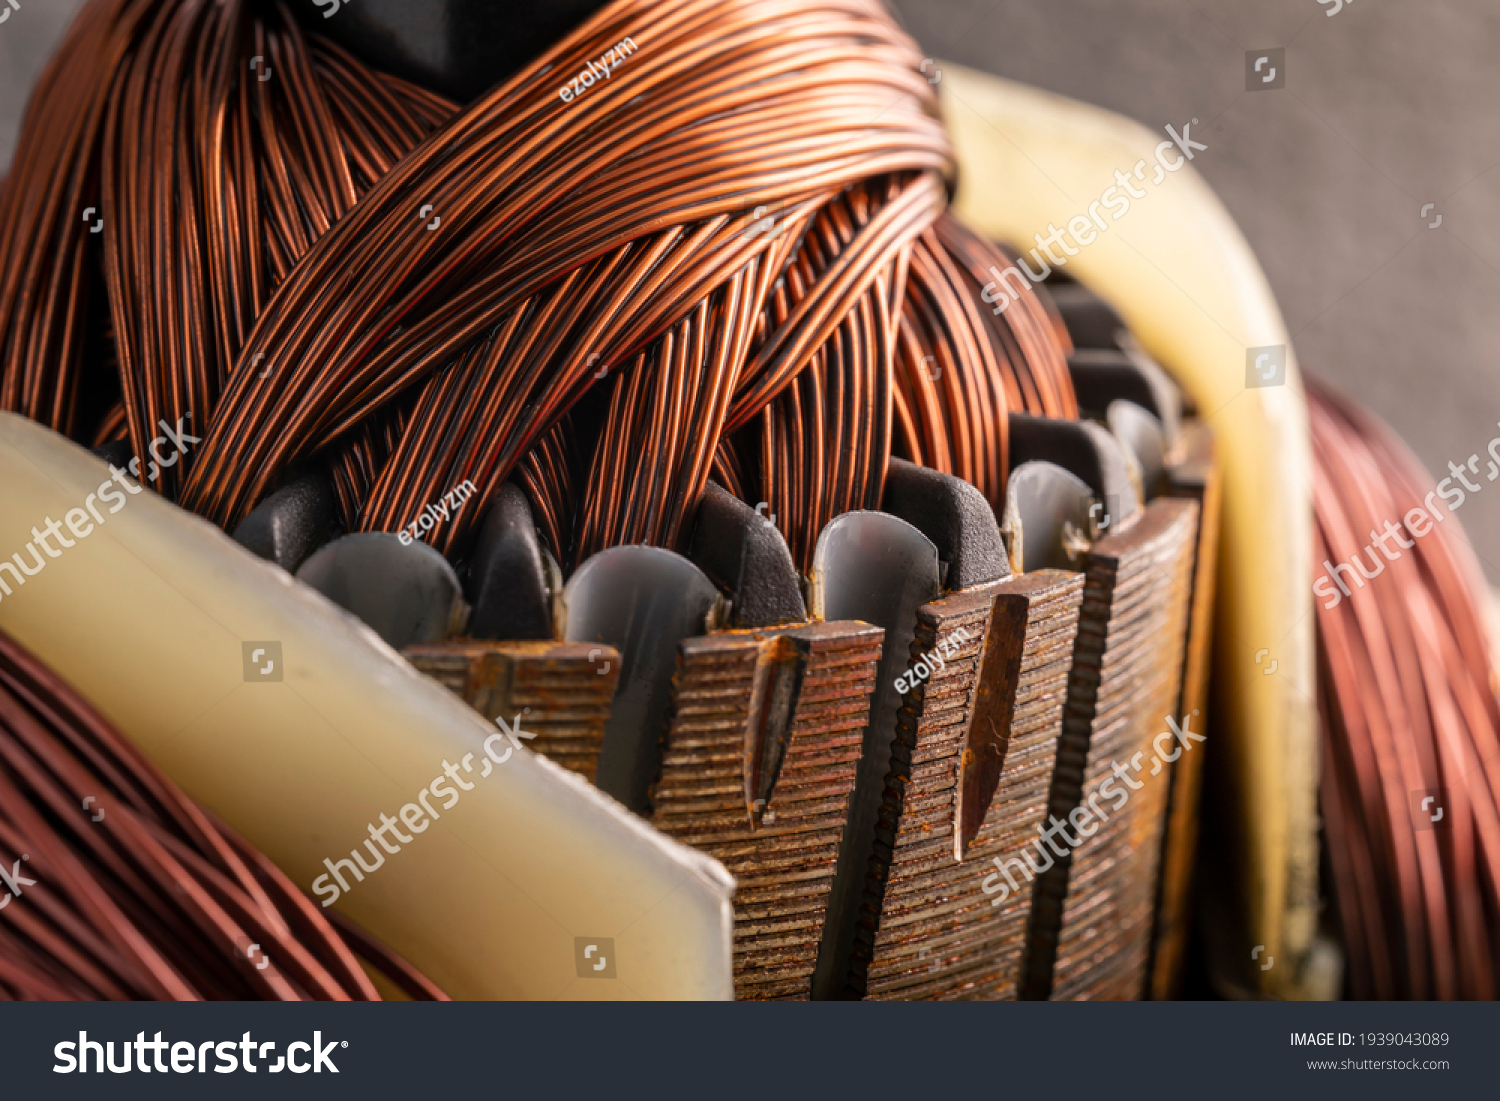 Rotor of an electric motor close up. Copper motor windings. #1939043089